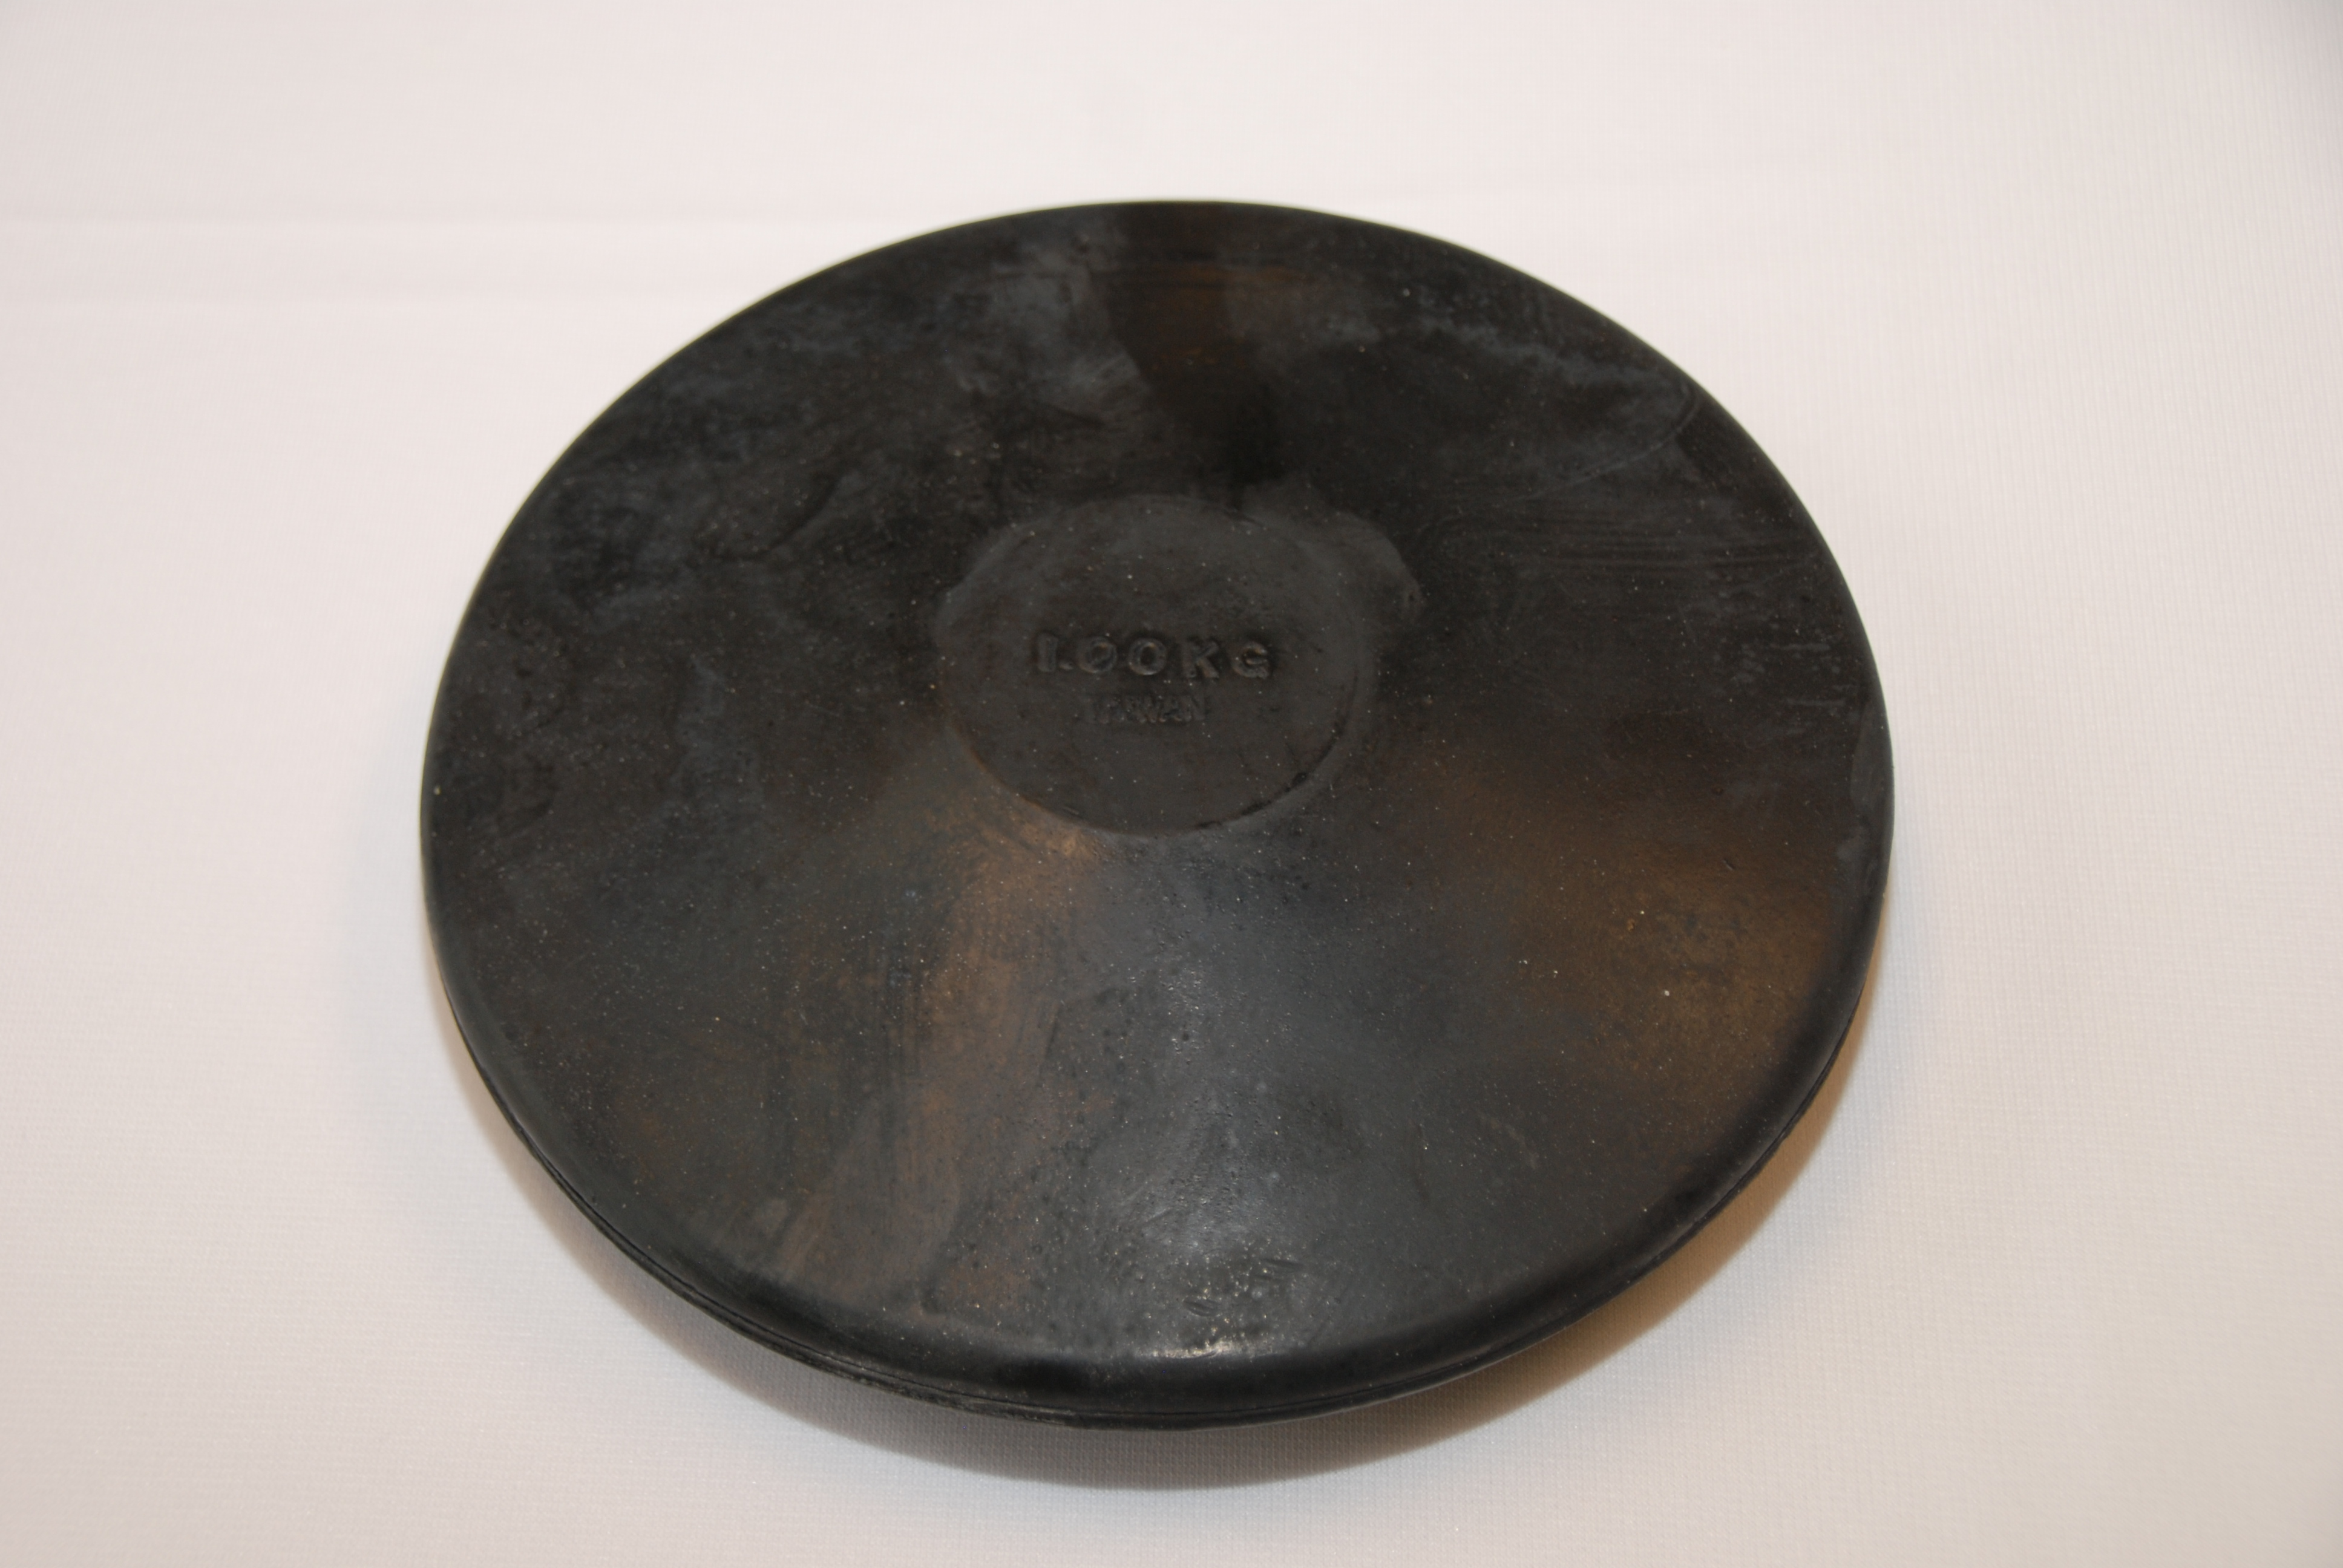 Everrich EVP-0001 2.2 Pound Hard Rubber Discus EVRR073